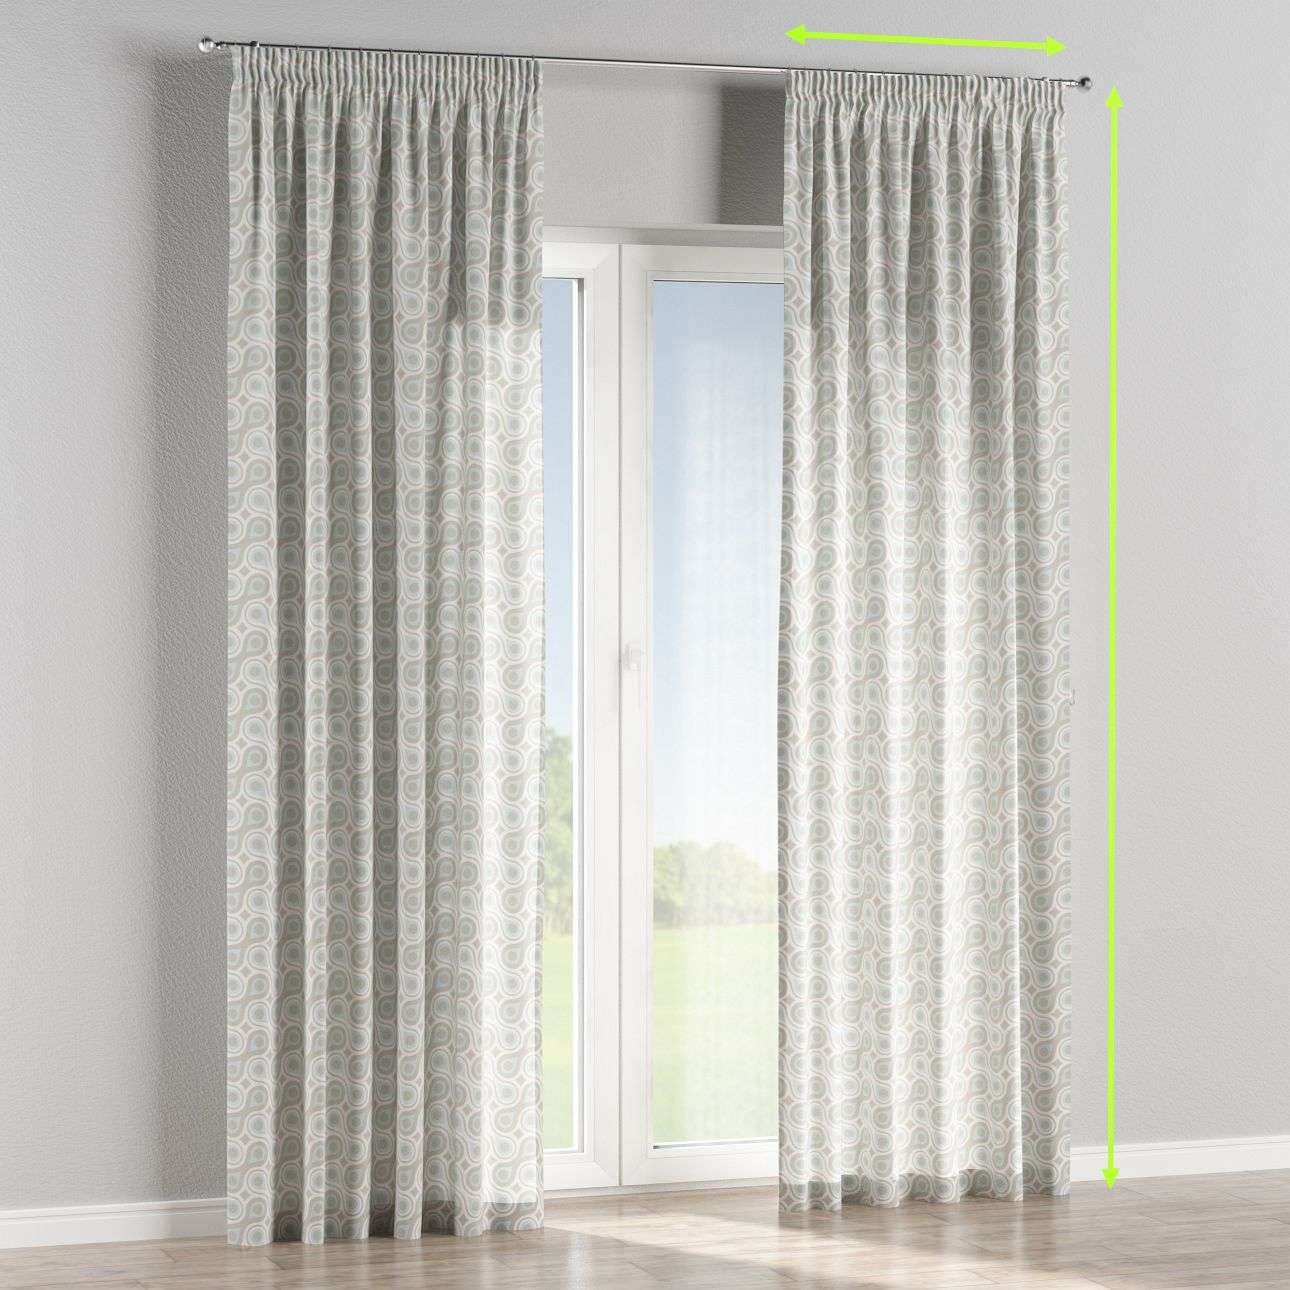 Pencil pleat lined curtains in collection Flowers, fabric: 311-13